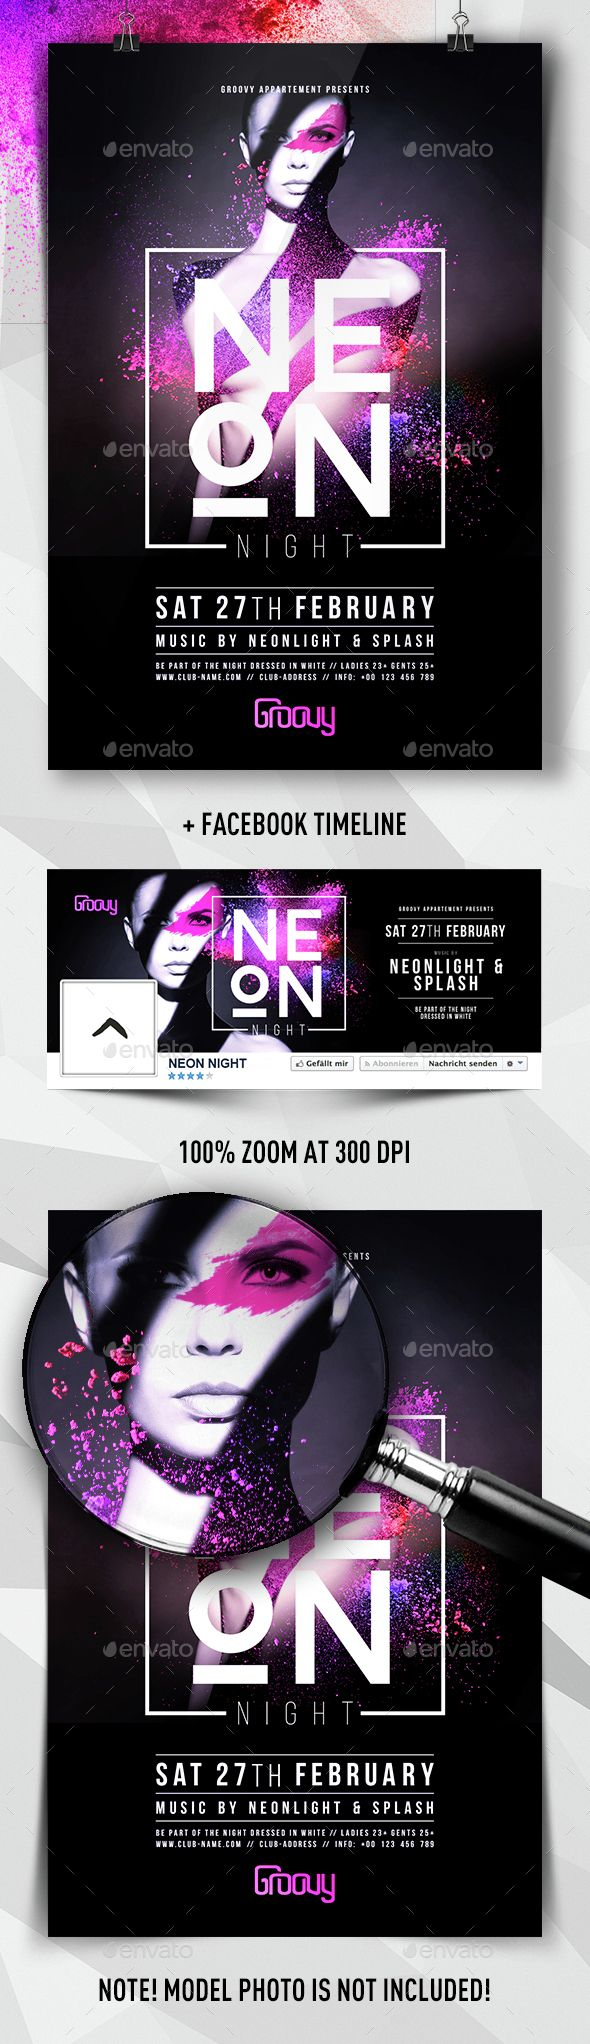 Neon Night Flyer Template PSD. Download here: http://graphicriver.net/item/neon-night-flyer/14679590?ref=ksioks